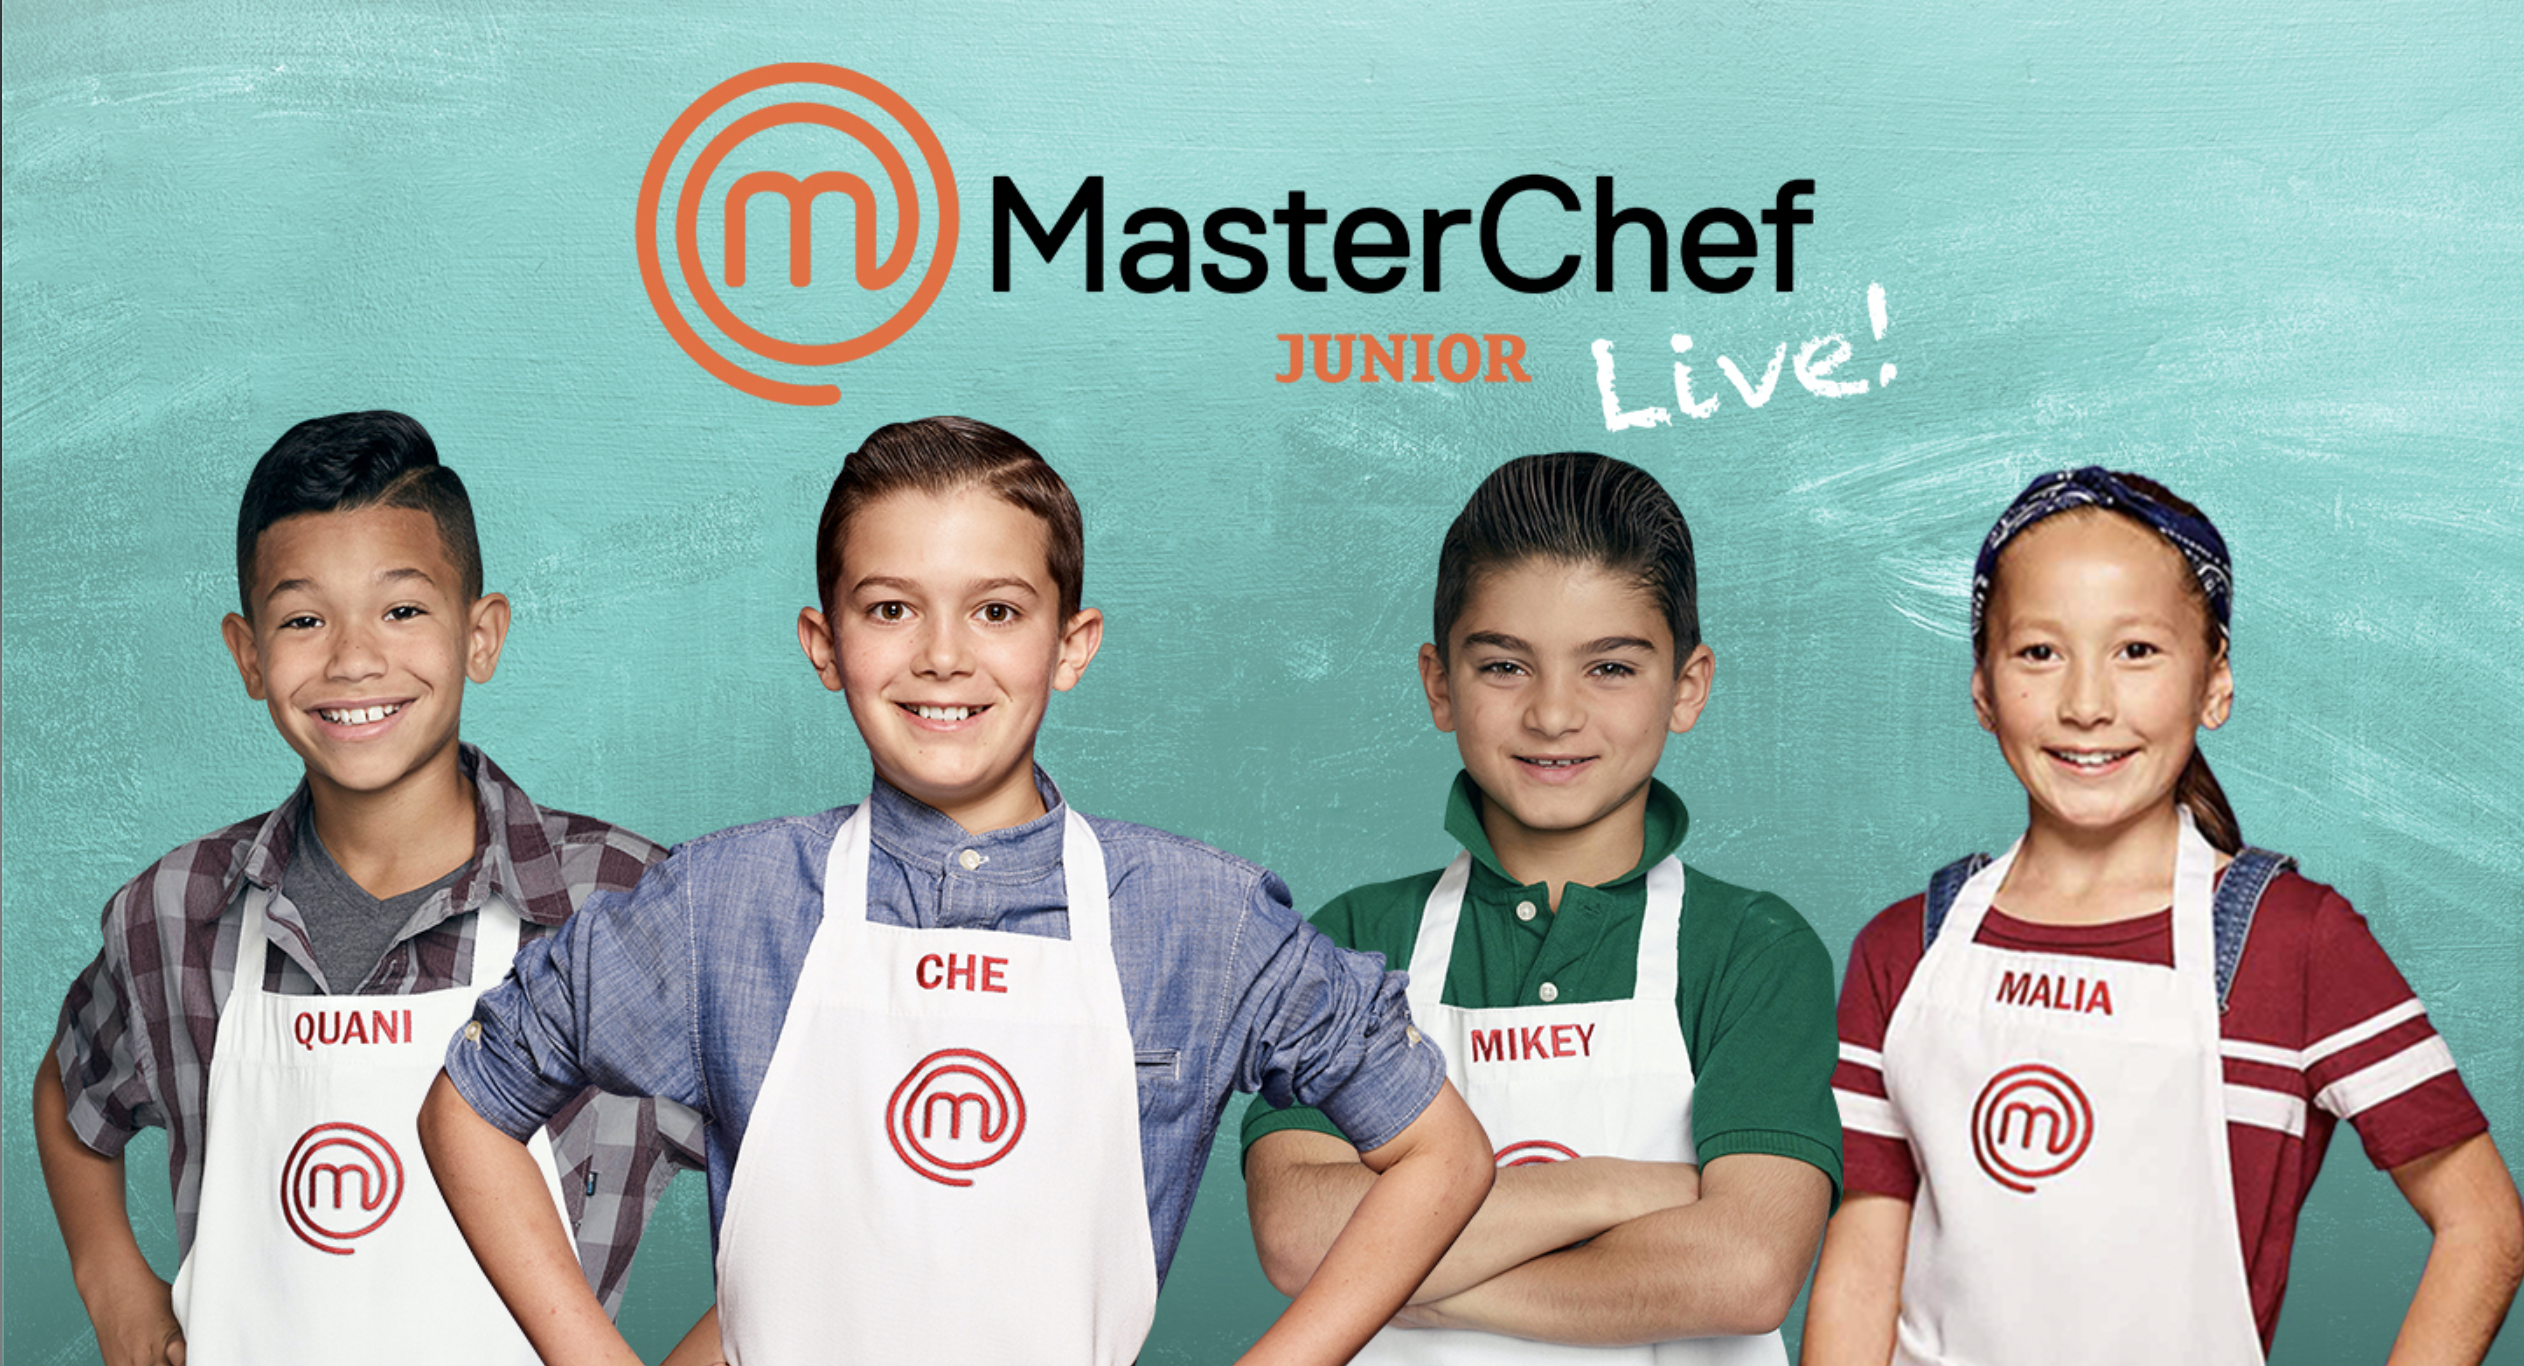 MasterChef Junior Live! @ Charleston Gaillard Center